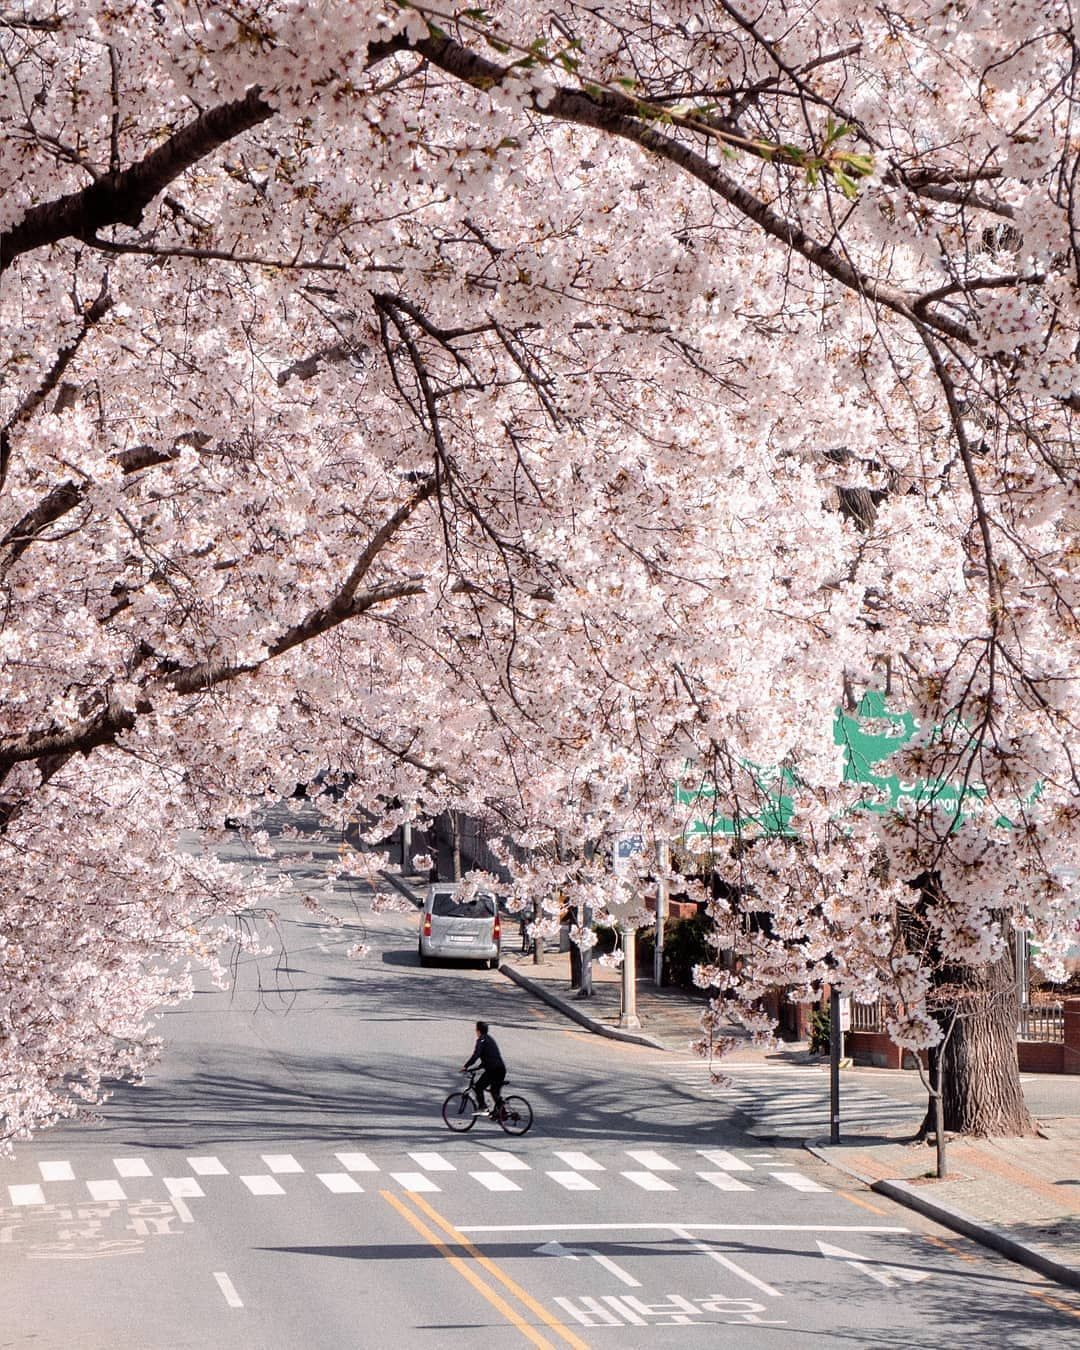 Korean Adventure On Instagram Cherry Blossom Season Is One Of The Best Times To Visit South Korea All Of The Pla Korea Travel South Korea Travel South Korea